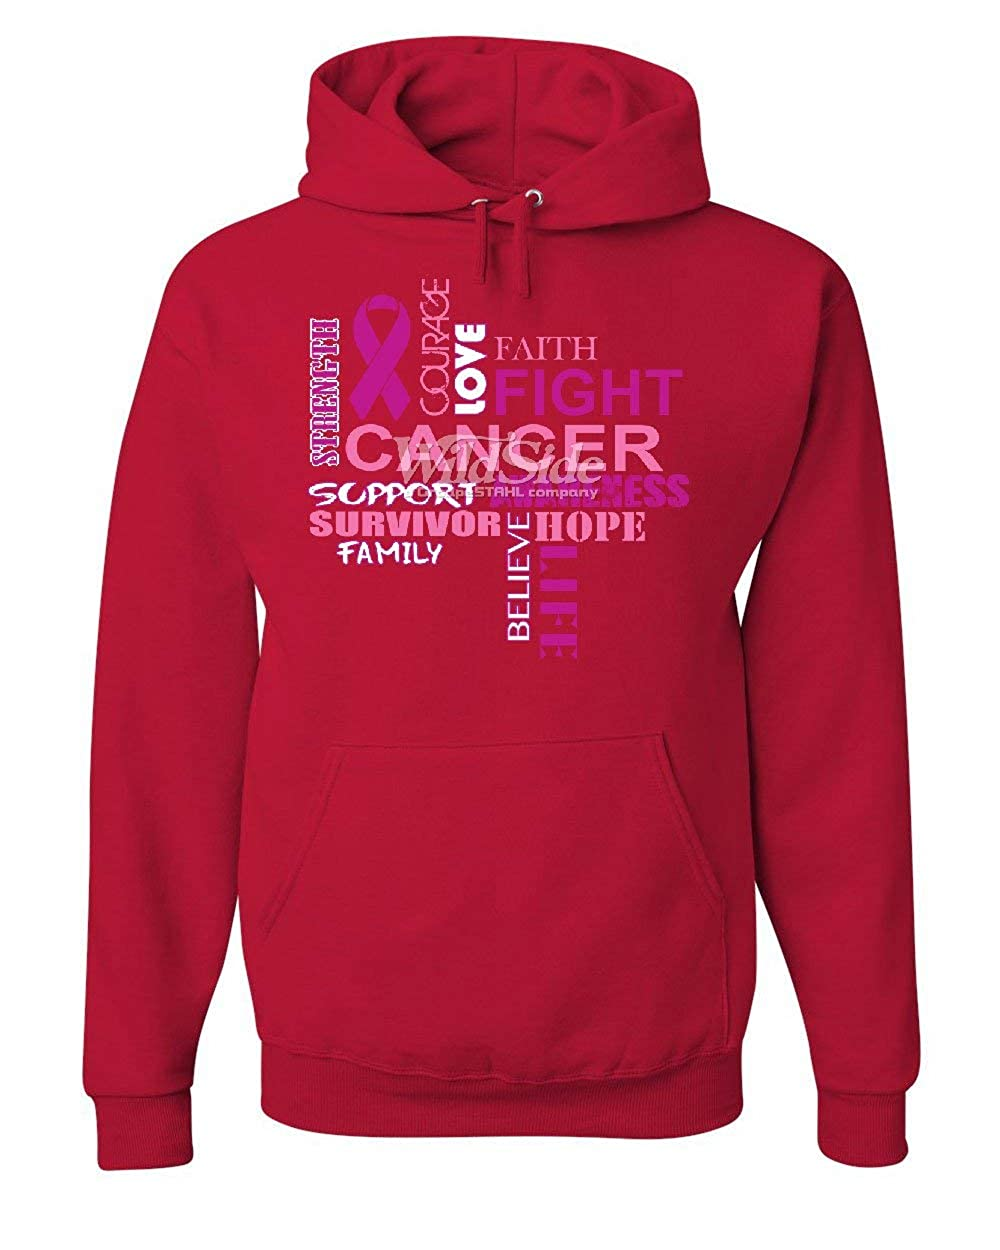 Tee Hunt Fight Cancer Hoodie Pink Strength Support Awareness Family Hope Sweatshirt